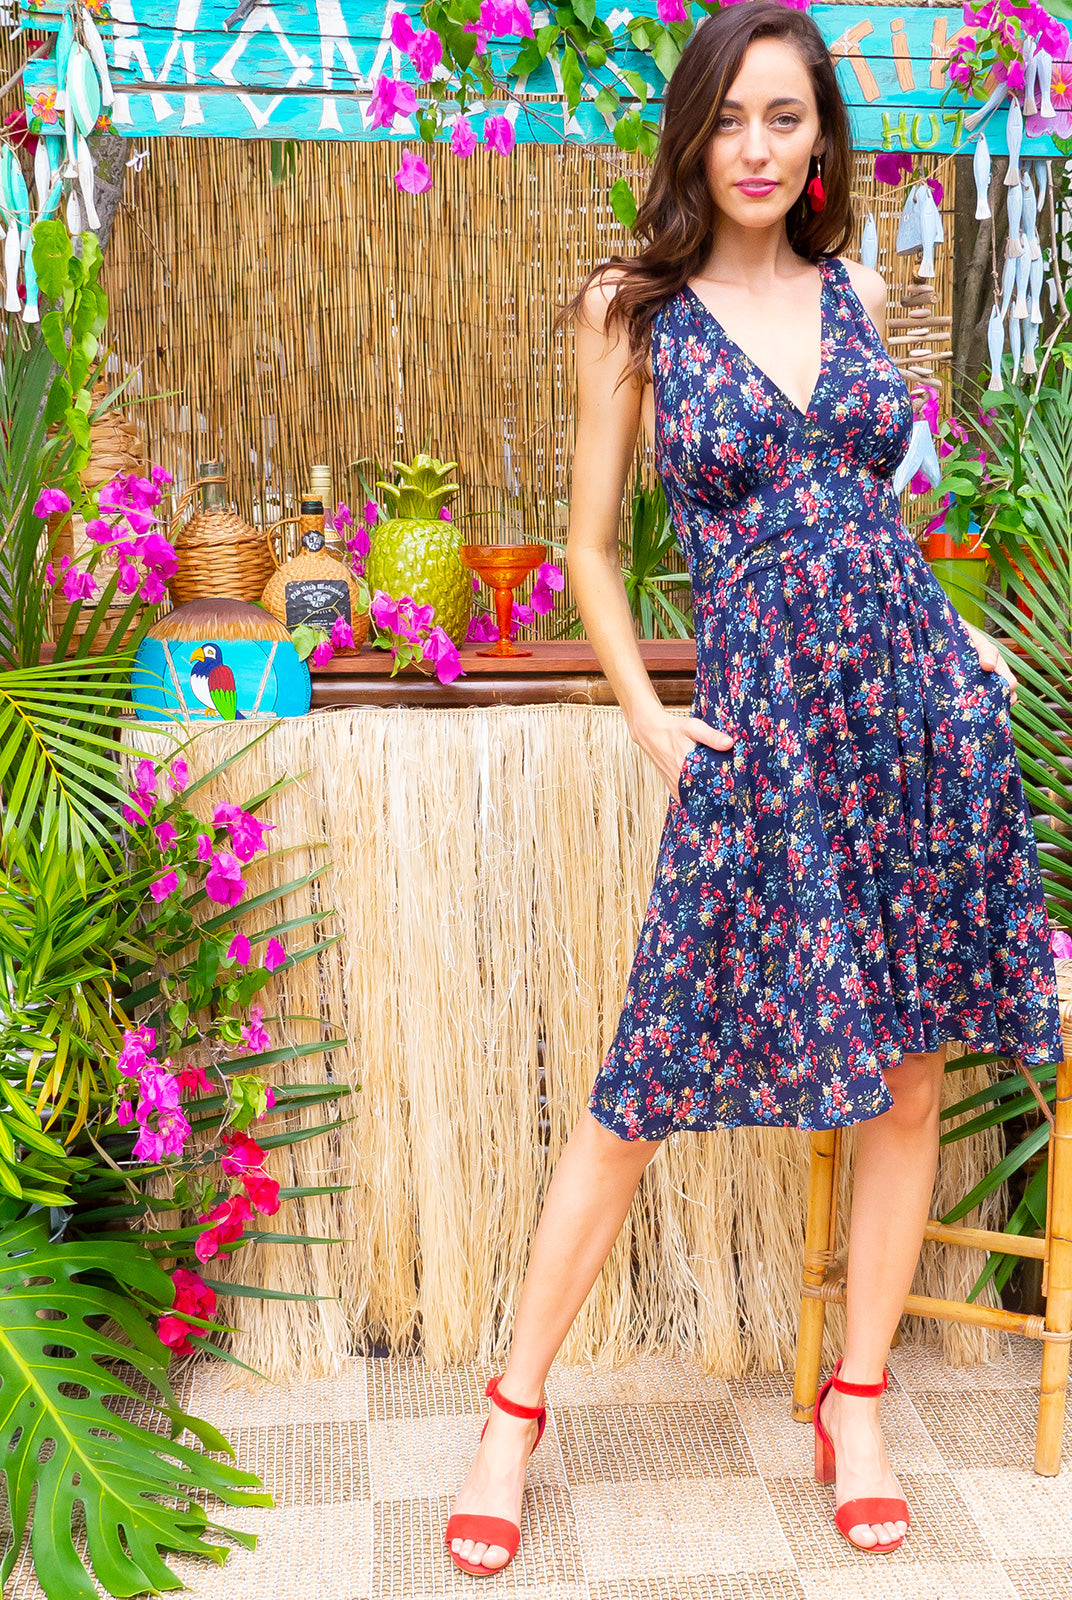 Little Lola Ditzy Navy dress features a vintage inspired fitted basque waist and elasticated waist with a sleeveless design and deep v neck the fabric is a soft woven rayon in a dark navy ditzy bouquet floral print